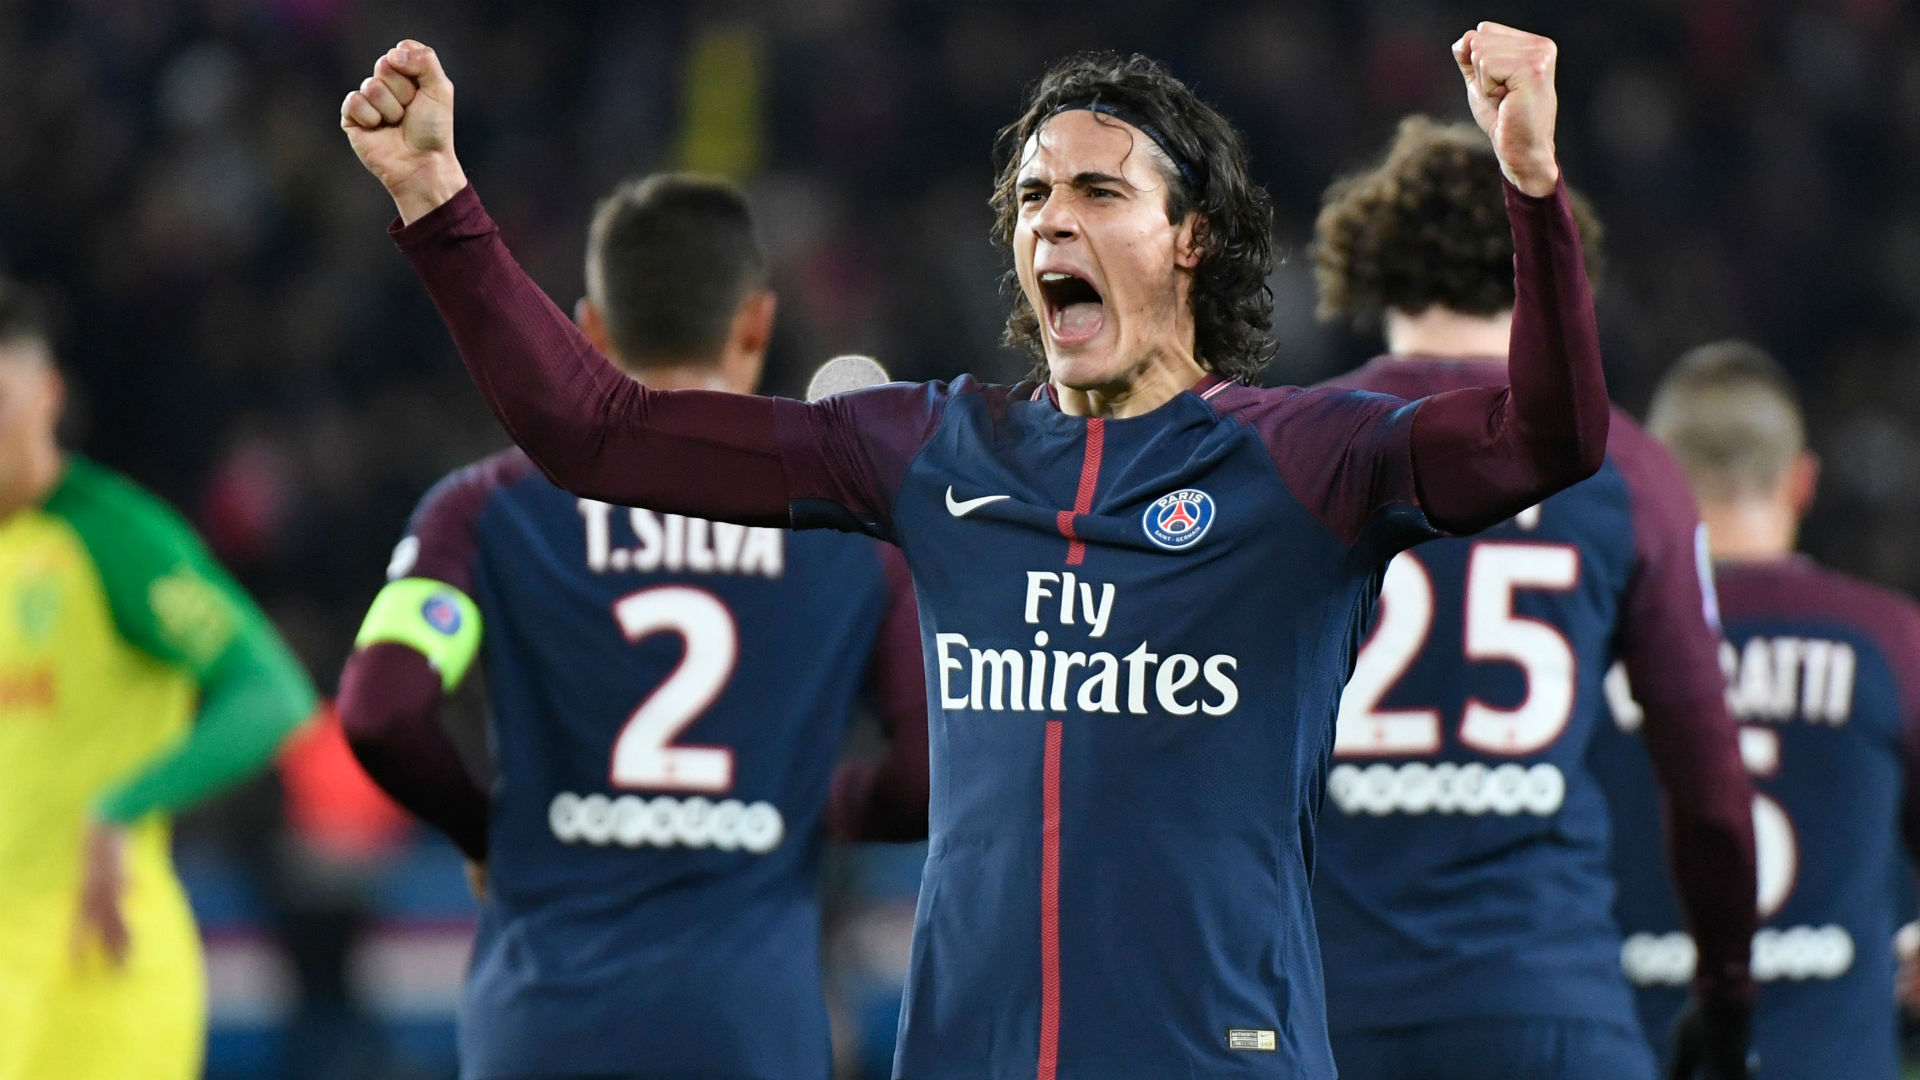 Edinson Cavani scores twice as Paris Saint Germain hammer Nantes